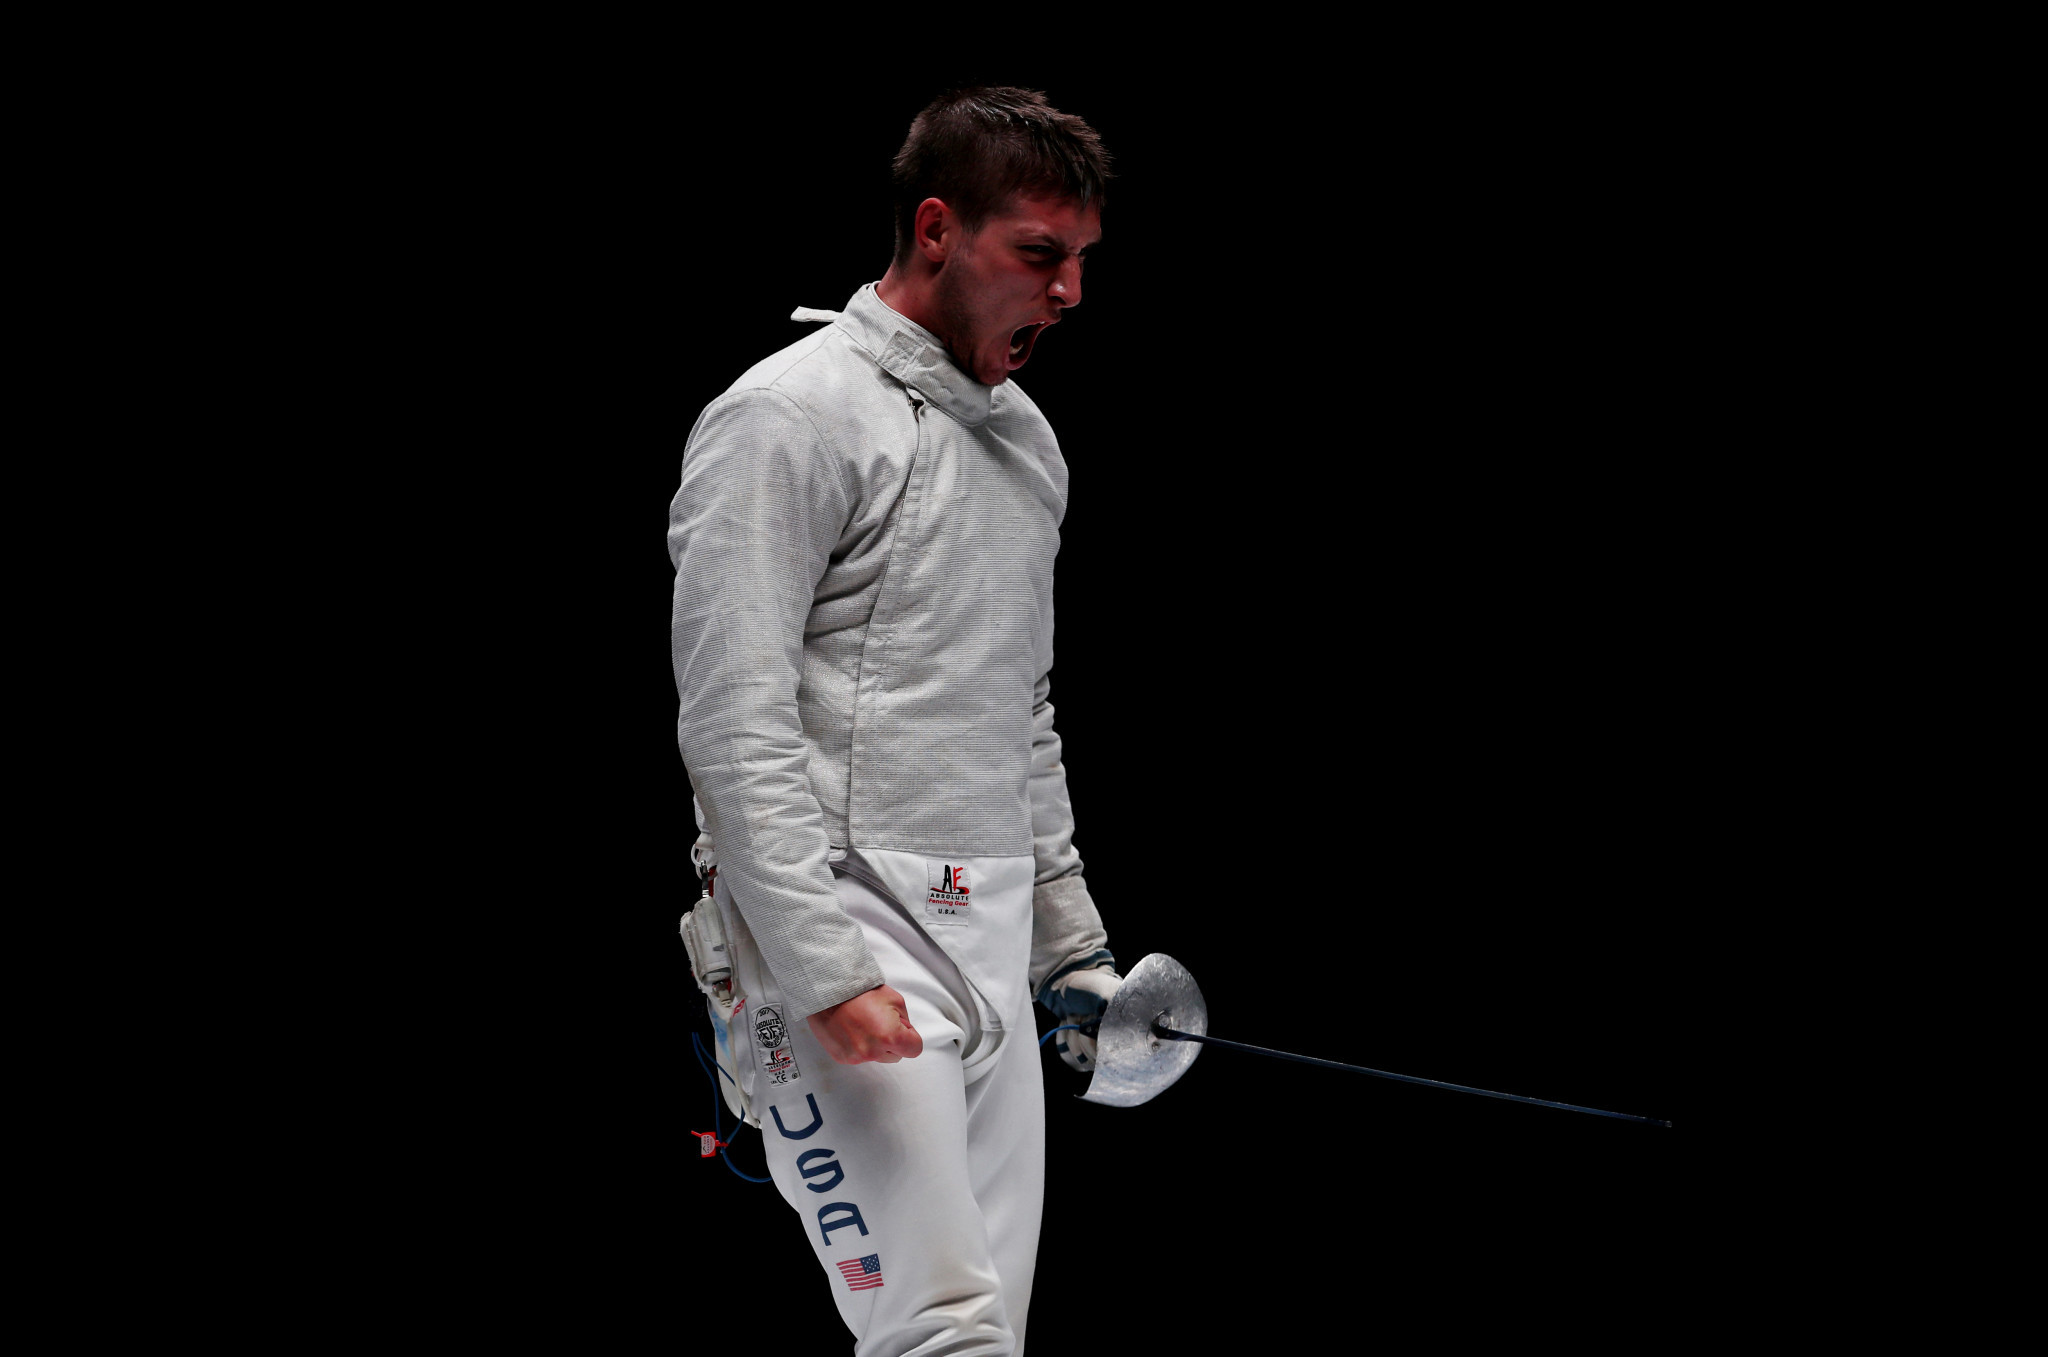 Dershwitz and Ross strike gold as United States dominate opening day of Pan American Fencing Championships